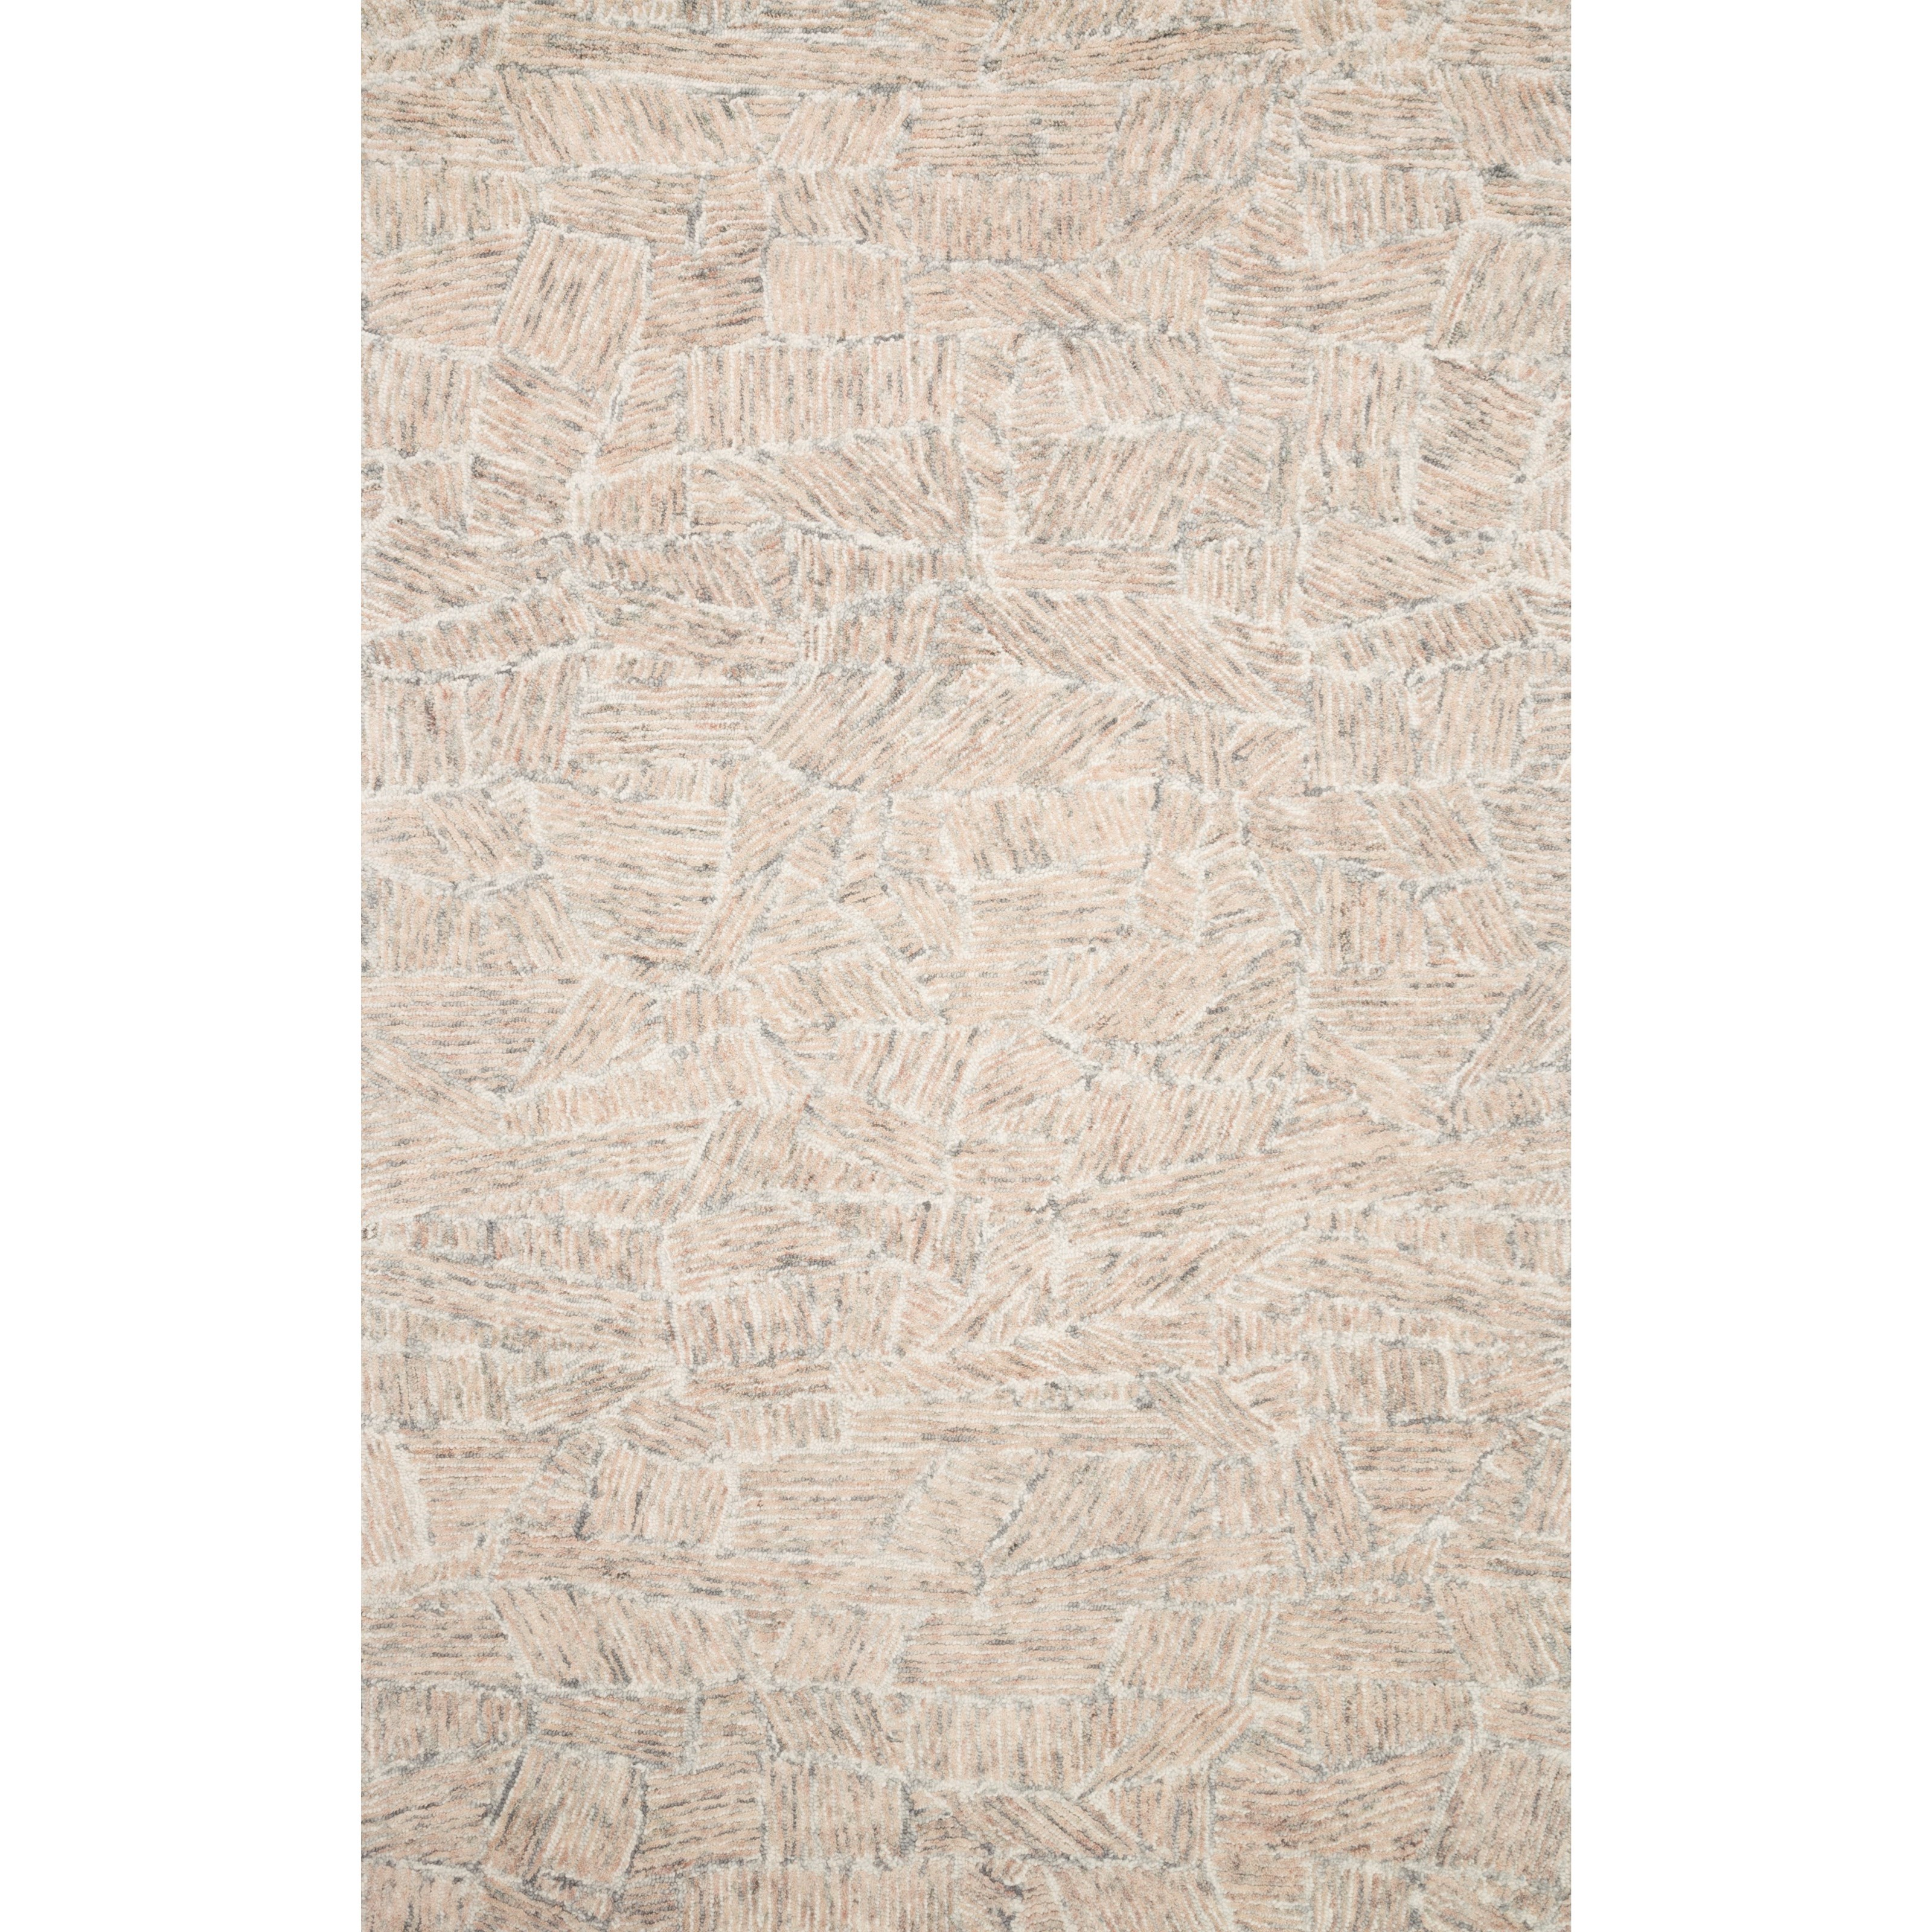 """Peregrine 2'6"""" x 9'9"""" Blush Rug by Loloi Rugs at Virginia Furniture Market"""